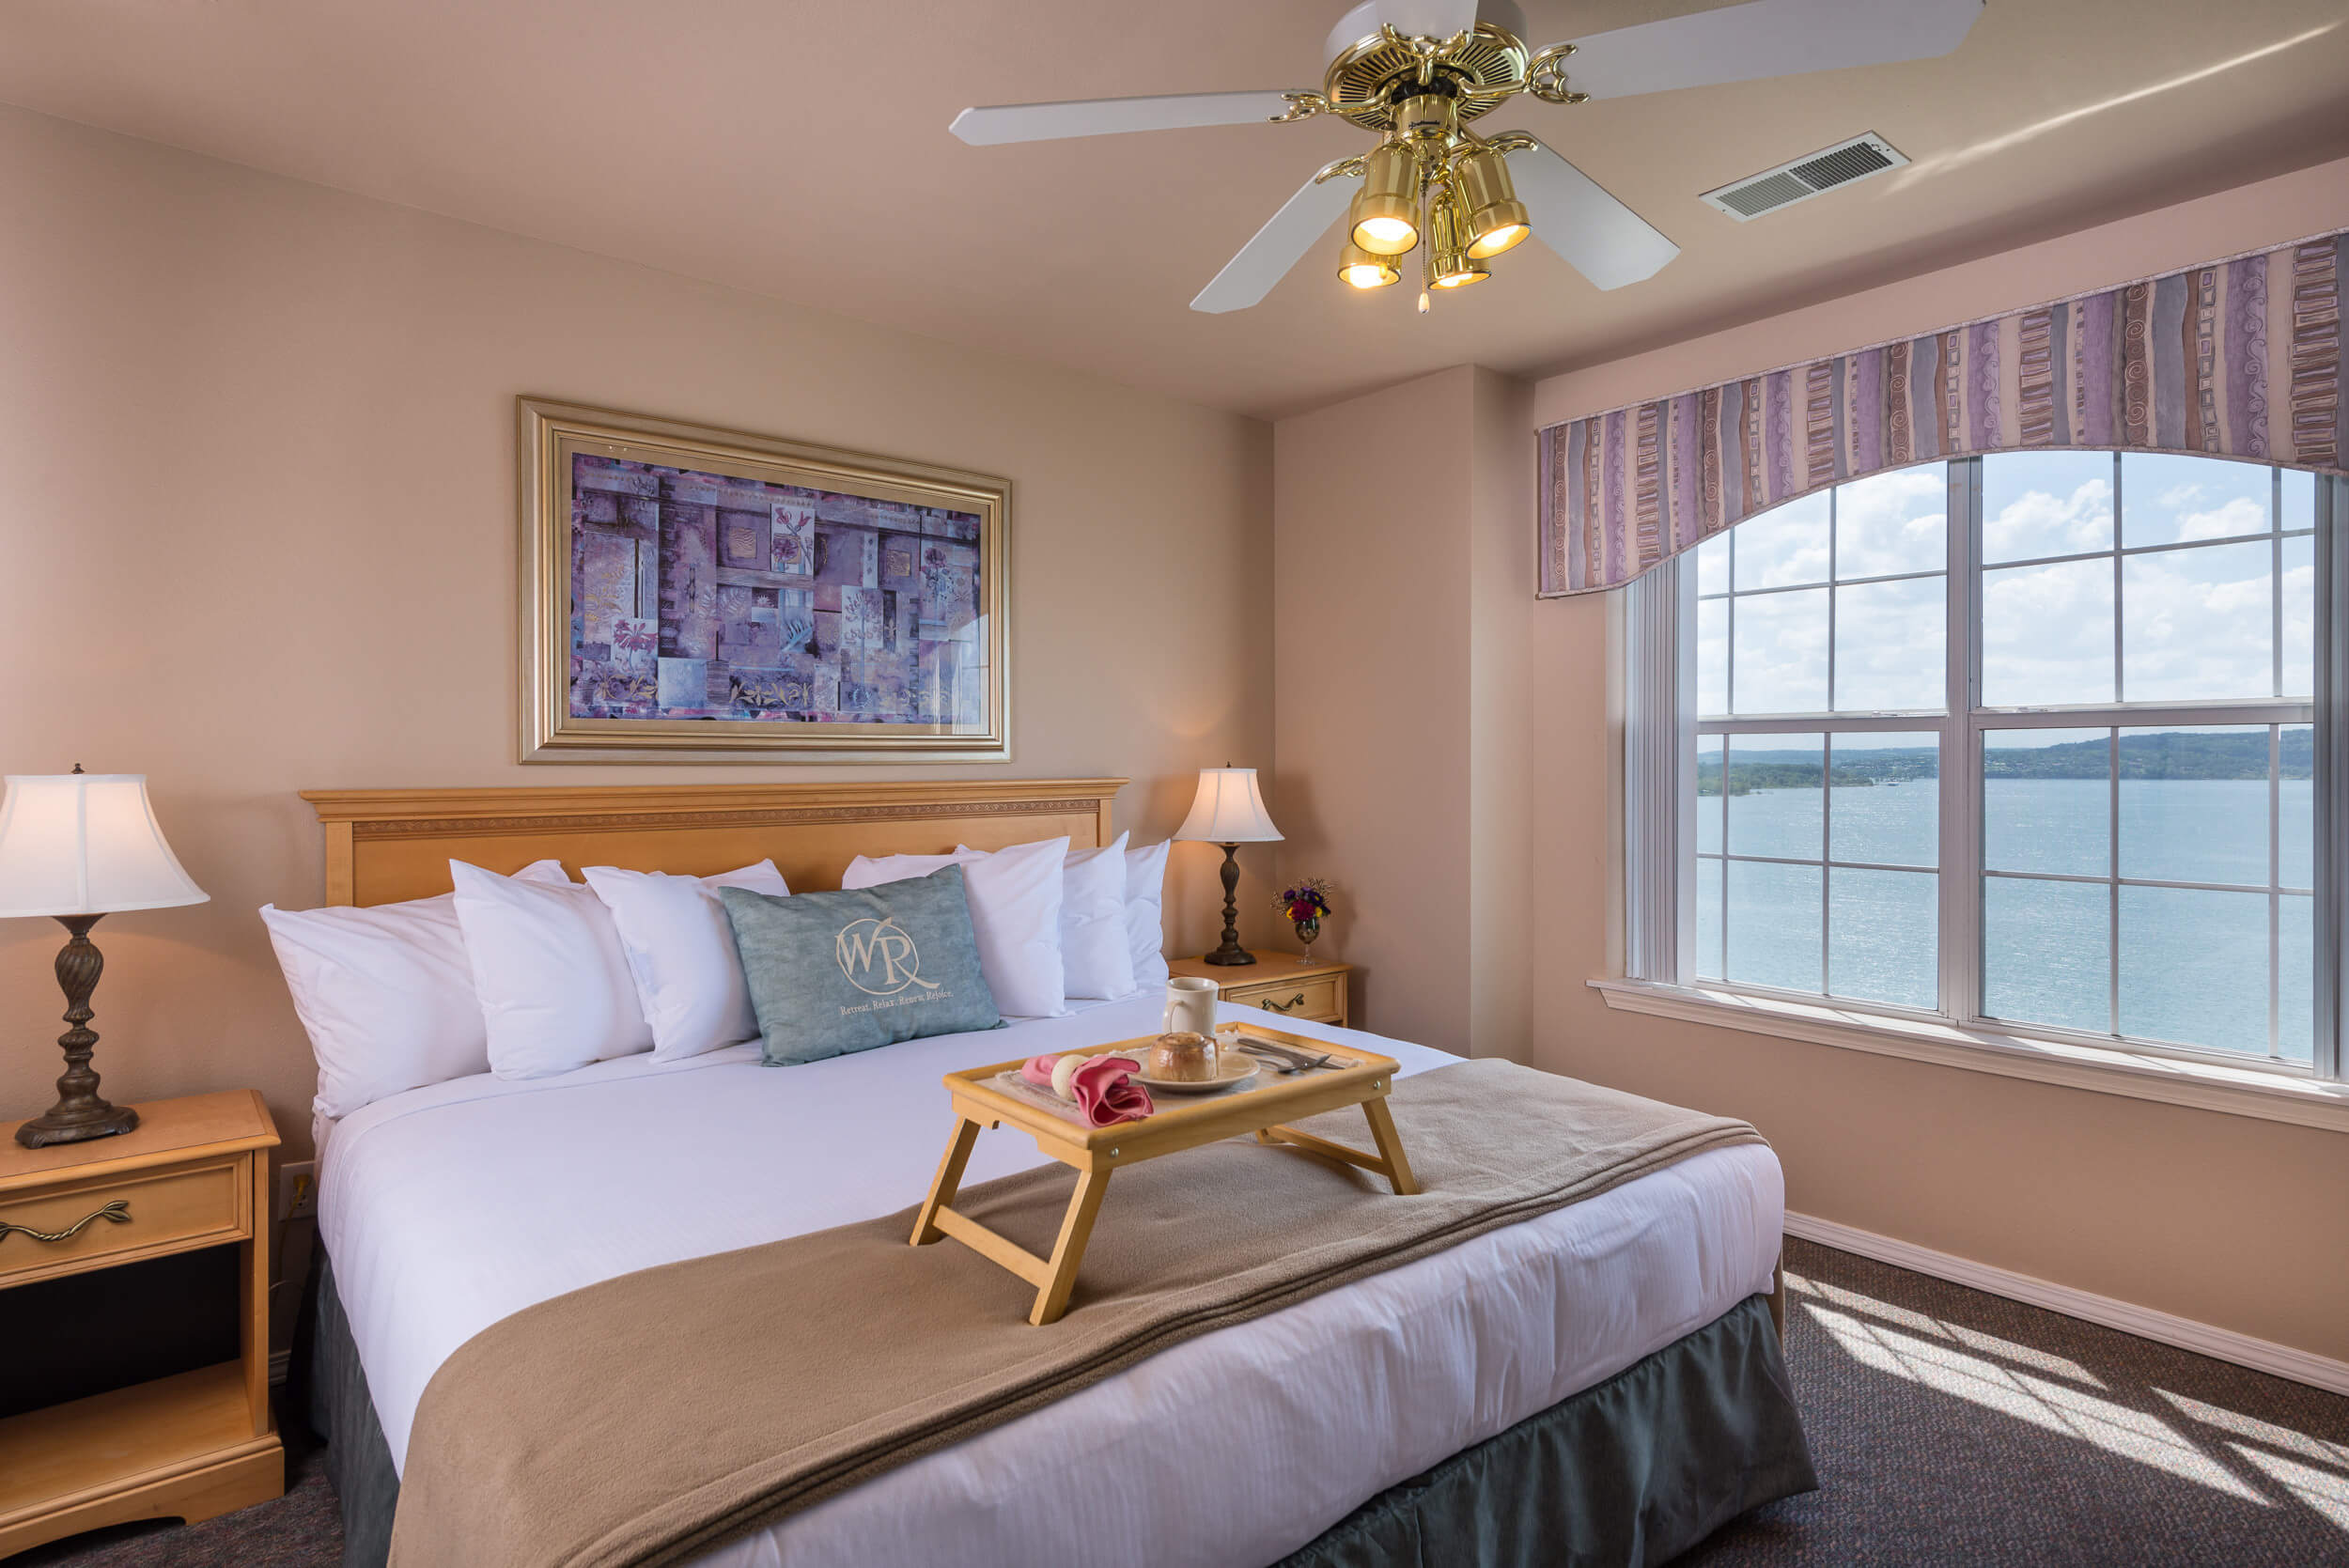 Bedroom Two-Bedroom Lake View Deluxe Villa at the resorts in Missouri | Westgate Branson Lakes Resort | Westgate Resorts